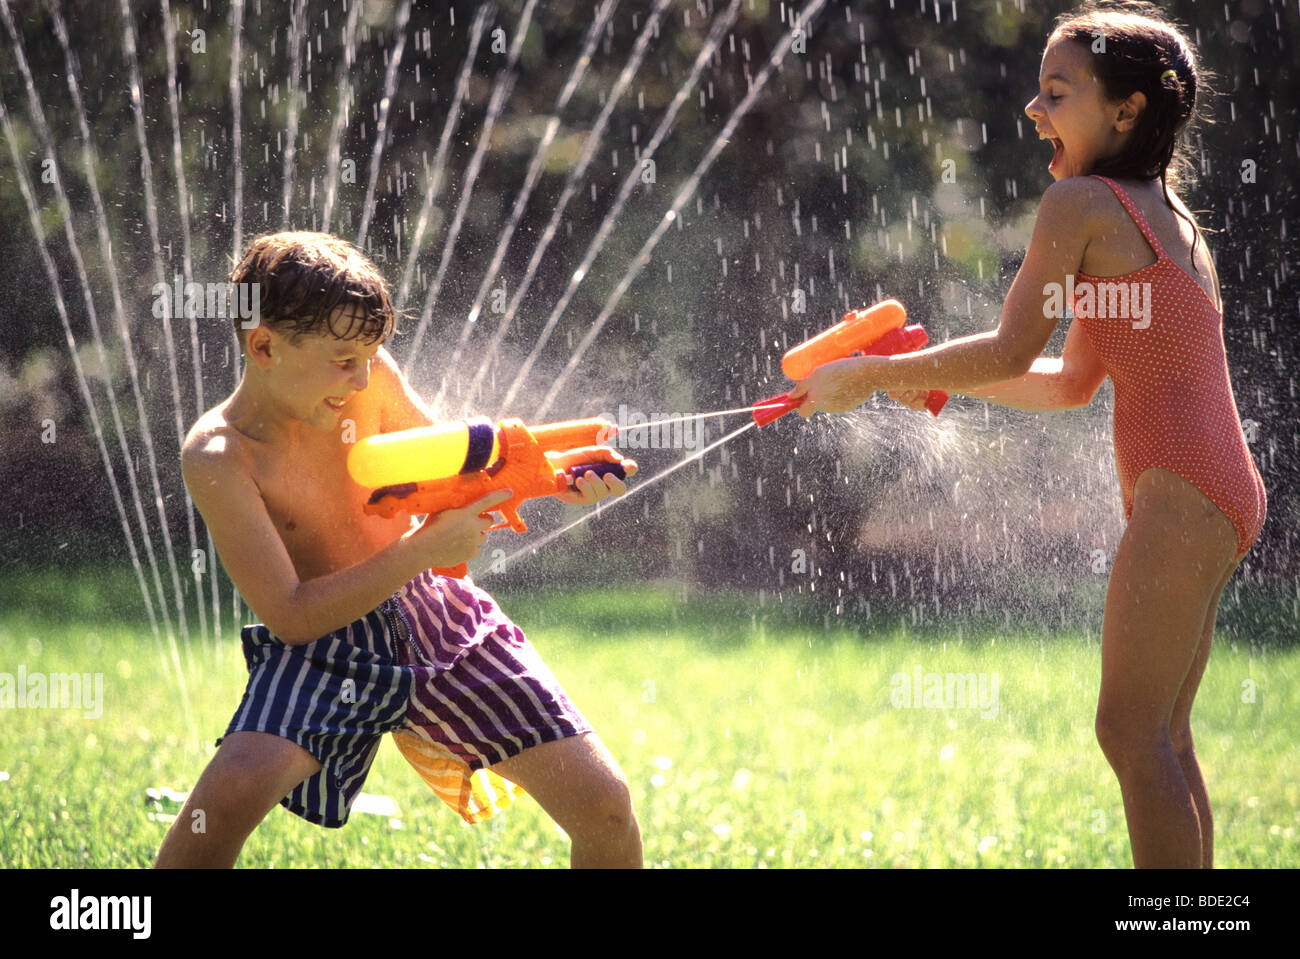 kids play water Kids playing with squirt guns on a summer day. - Stock Photo